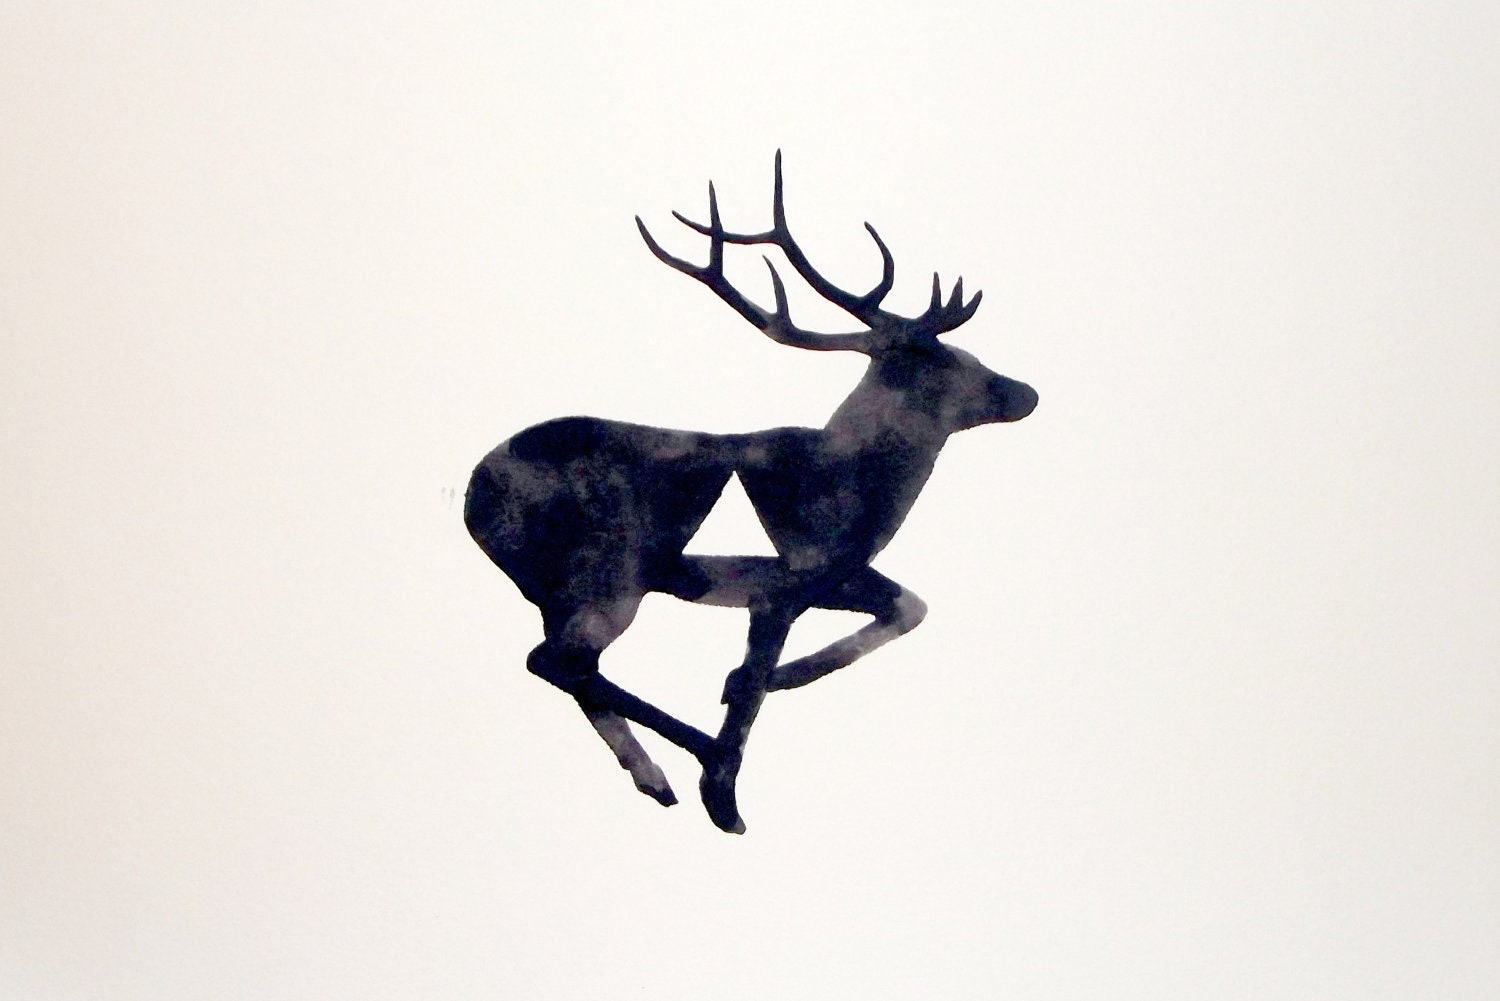 Watercolor - Original - Deer - Antler - Geometric - Black - White - Gray - GeometricInk